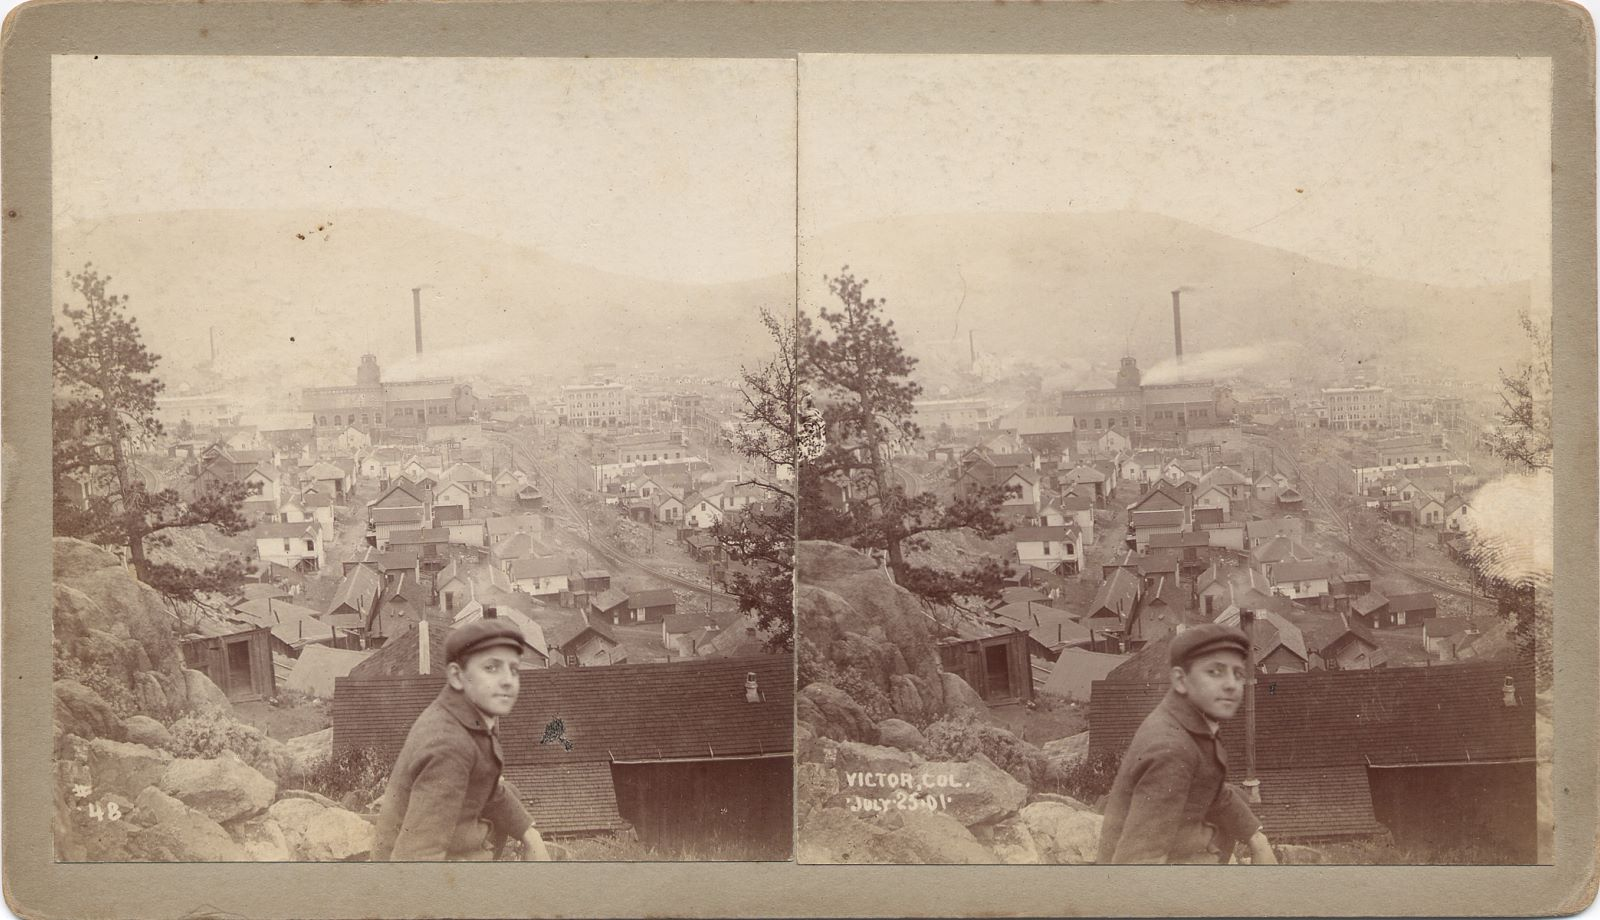 This view of Victor, from just above the M.T. spur down to Victor depot, on Squaw Mountain, is a nice one as it is dated and hence help show how for instance the Gold Coin looked in July 1901, as when the photographer R.I. Dabb of Le Mars, Iowa, took it on the 25th. * Sadly, it is quite faded in the background, but to the left of the Gold Coin is the quite large and bulky shaft house of the Strong mine seen in the distance, and that is of help to date views of the Strong mine as well, making this an important view, even if the Strong mine itself is not that easy to see details on. * The Gold Coin looks fully put up in bricks, all roofs and walls are there, the ore-house looks very narrow in its width when compared to the engine-house, boiler-house of the Gold Coin, but almost same width as the shaft-house. The roadbed of the F. & C.C. is coming through further downhill, and passing by the Gold Coin with two sidings branching of outside the ore-house, before curving out of view behind the mine.